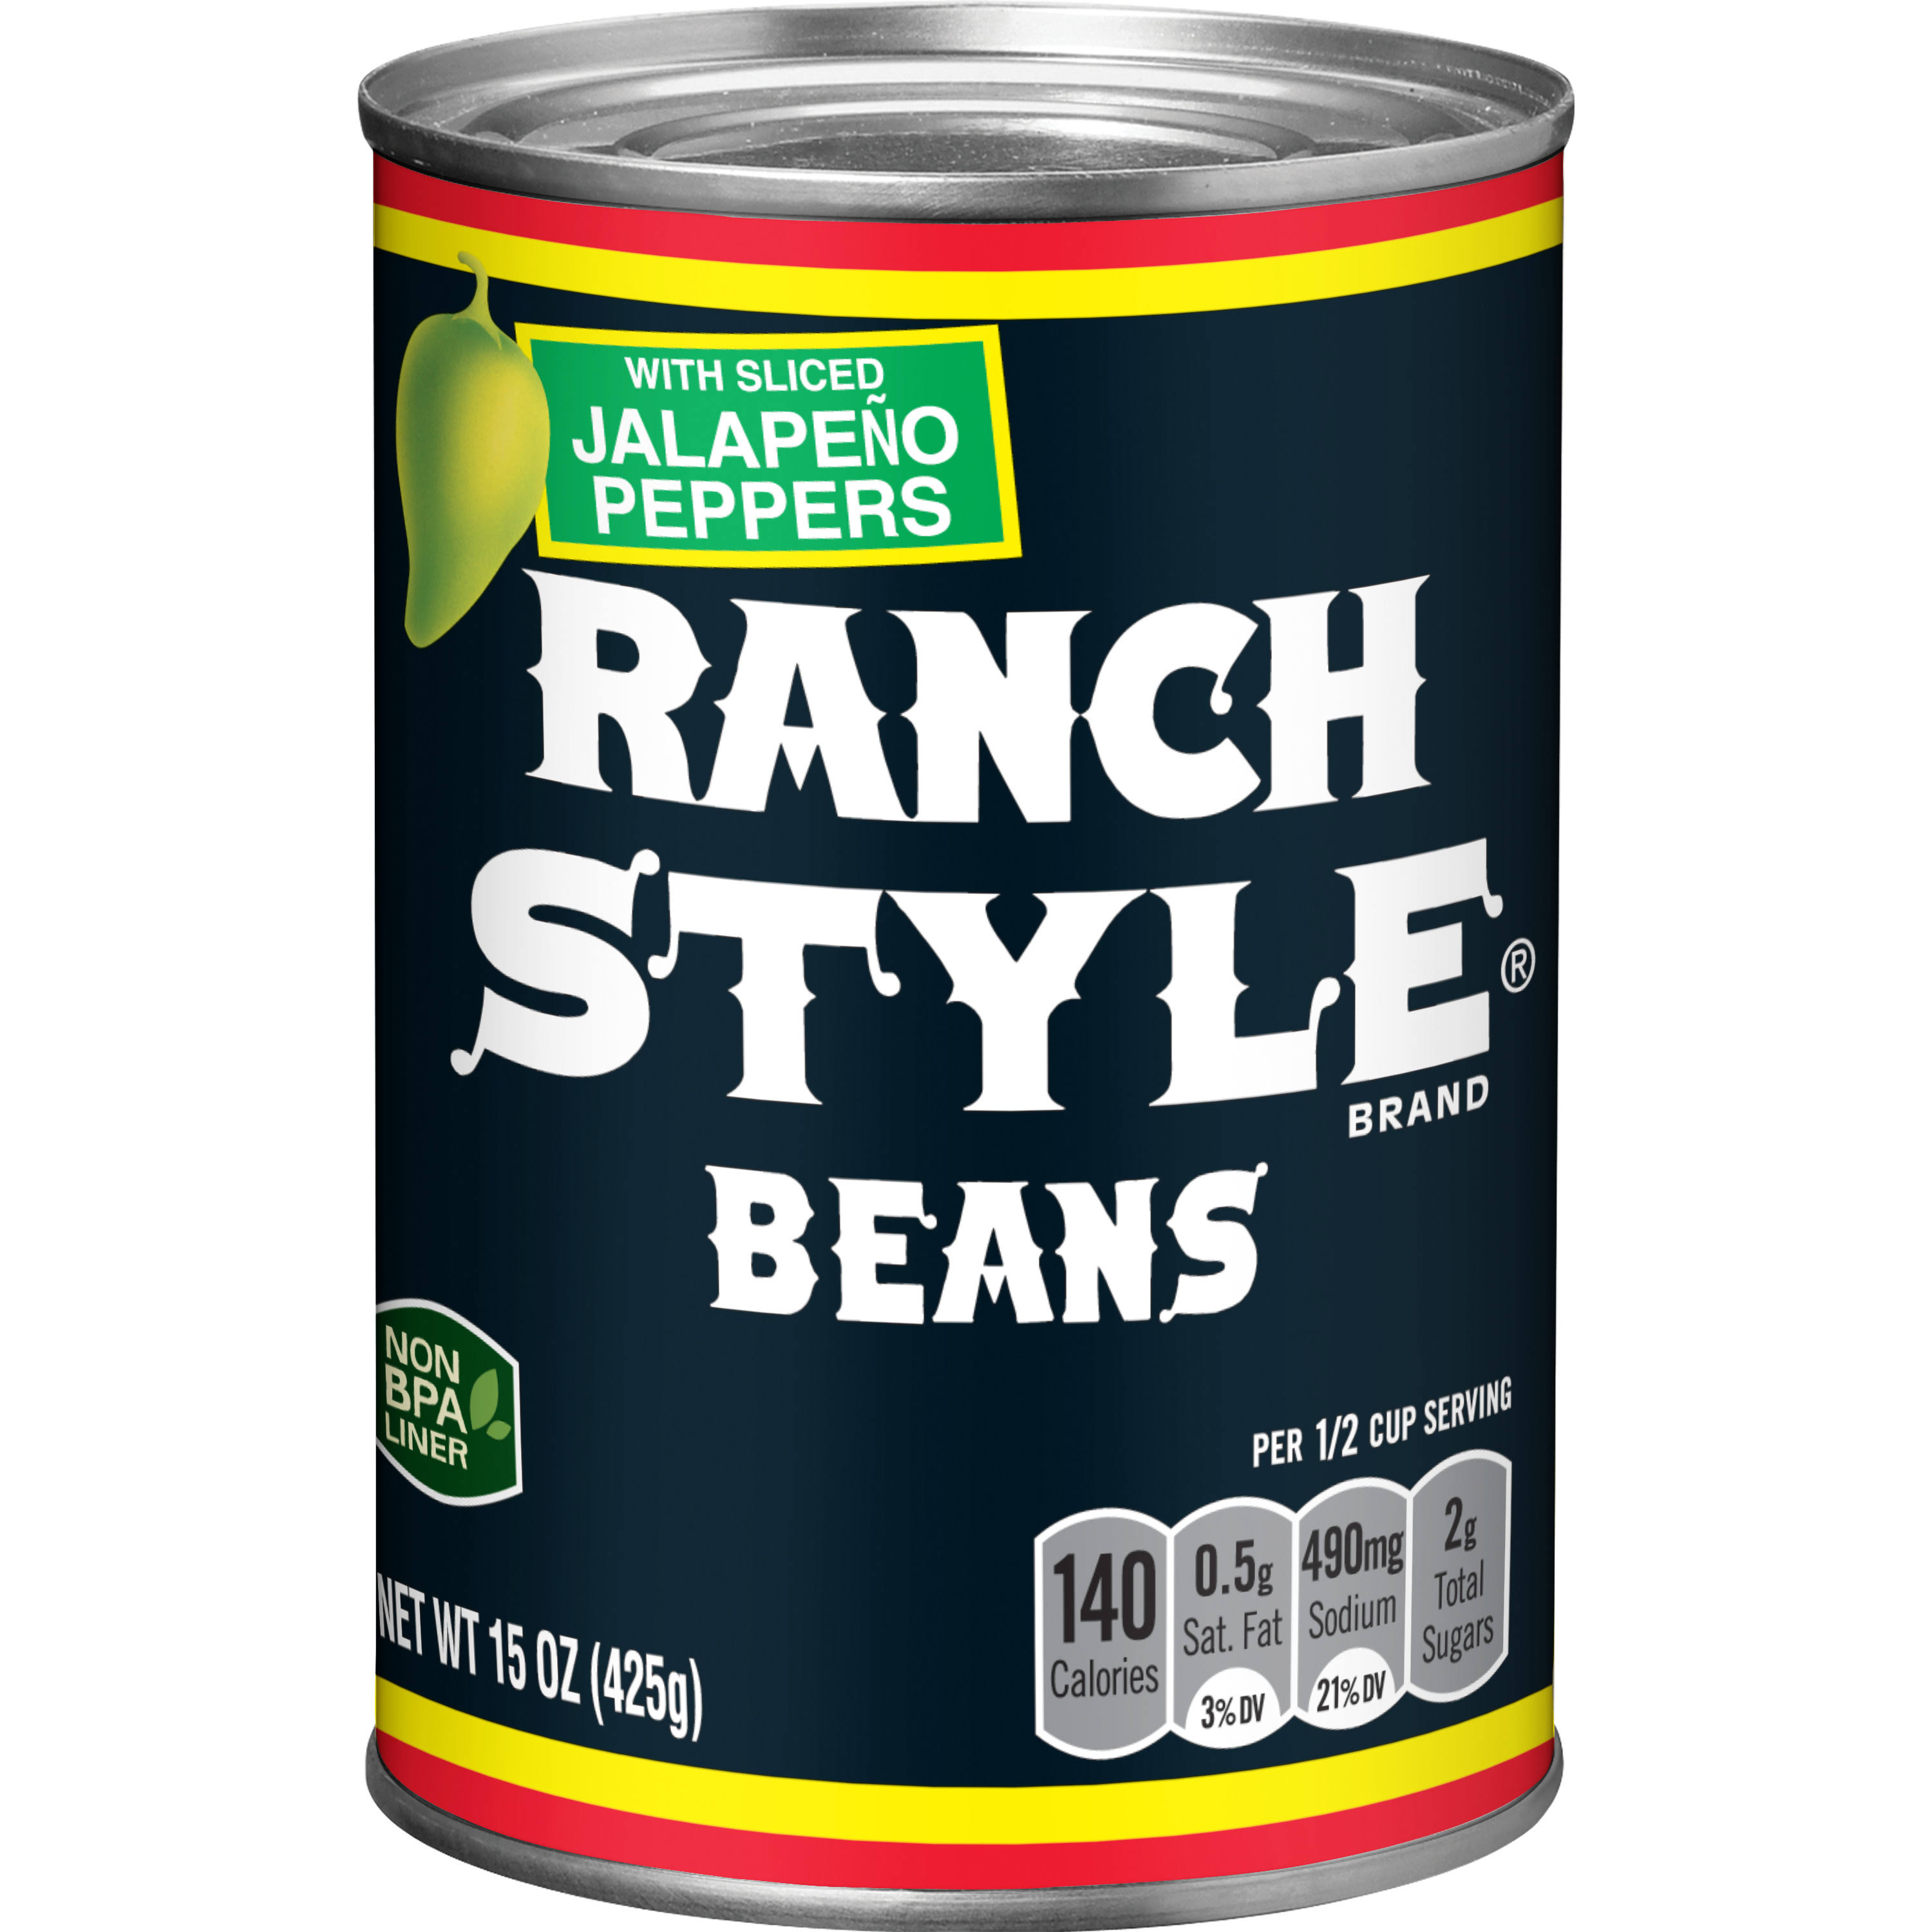 Ranch Style Beans - with Sliced Jalapeno Peppers, 15oz